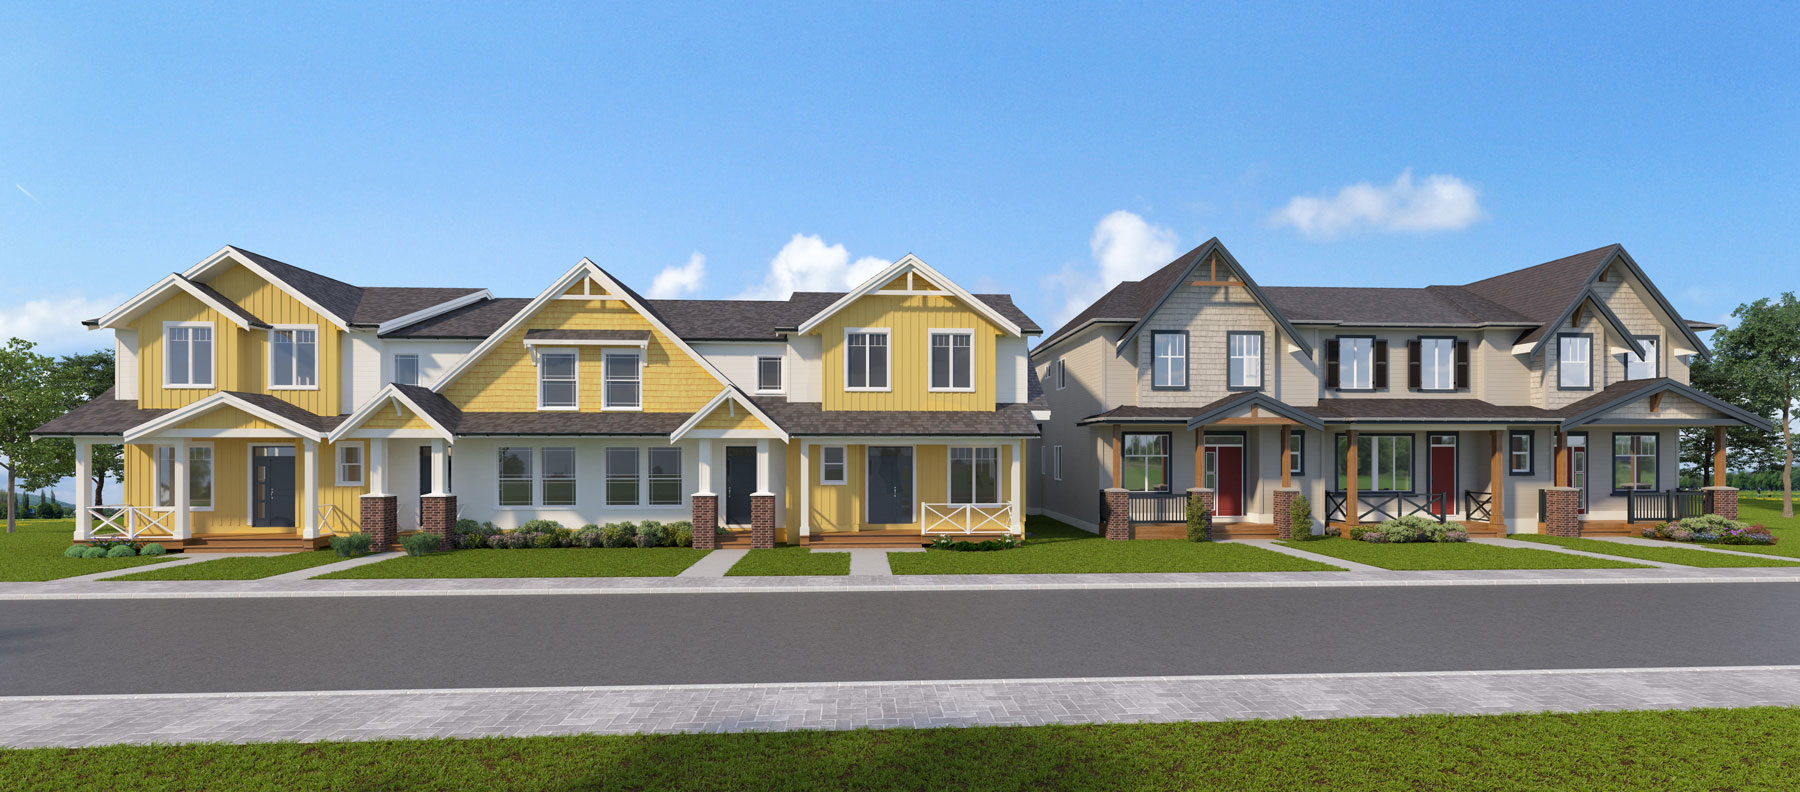 20525 76 Ave Rowhome Units Rendering